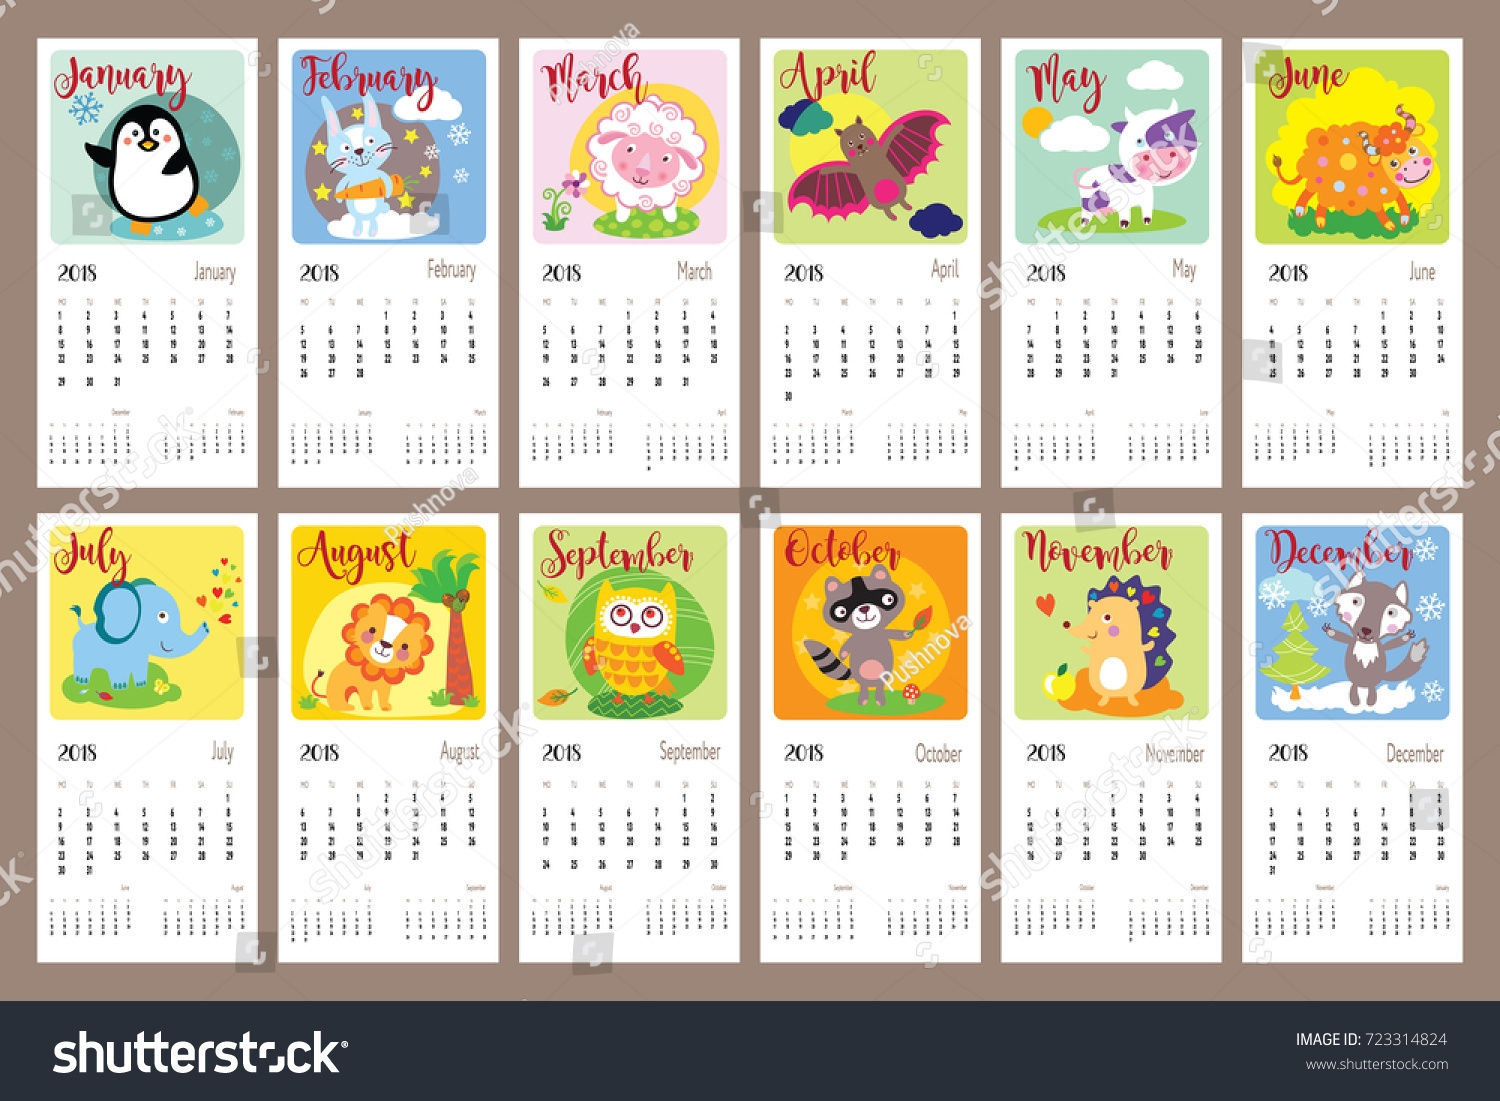 cute animals calendar 2018 year cute 2018 Printable Calendar Pretty By Year erdferdf